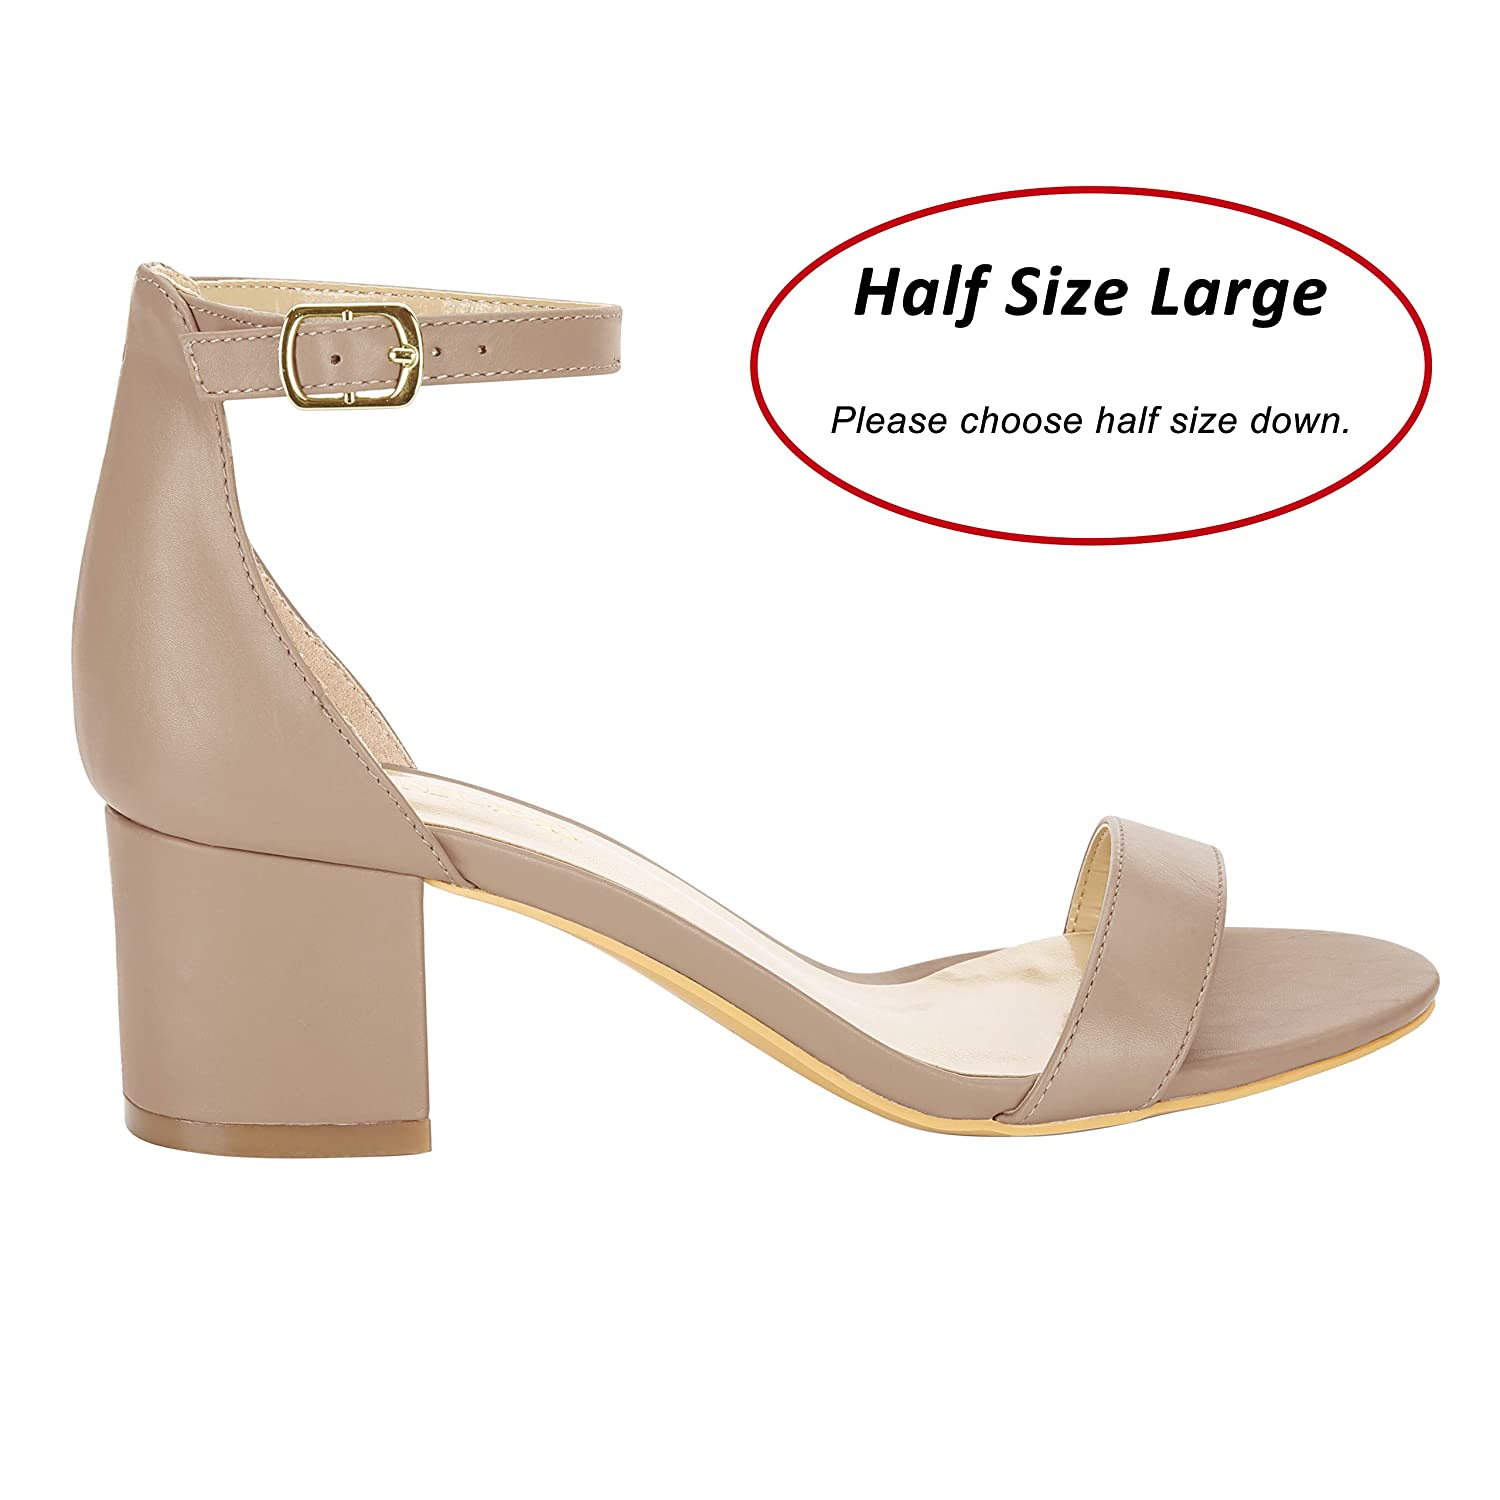 2c6bdc38bae Amazon.com  Eunicer Women s Single Band Classic Chunky Block Low Heel Pump  Sandals with Ankle Strap Dress Shoes (Half Size Large)  Shoes